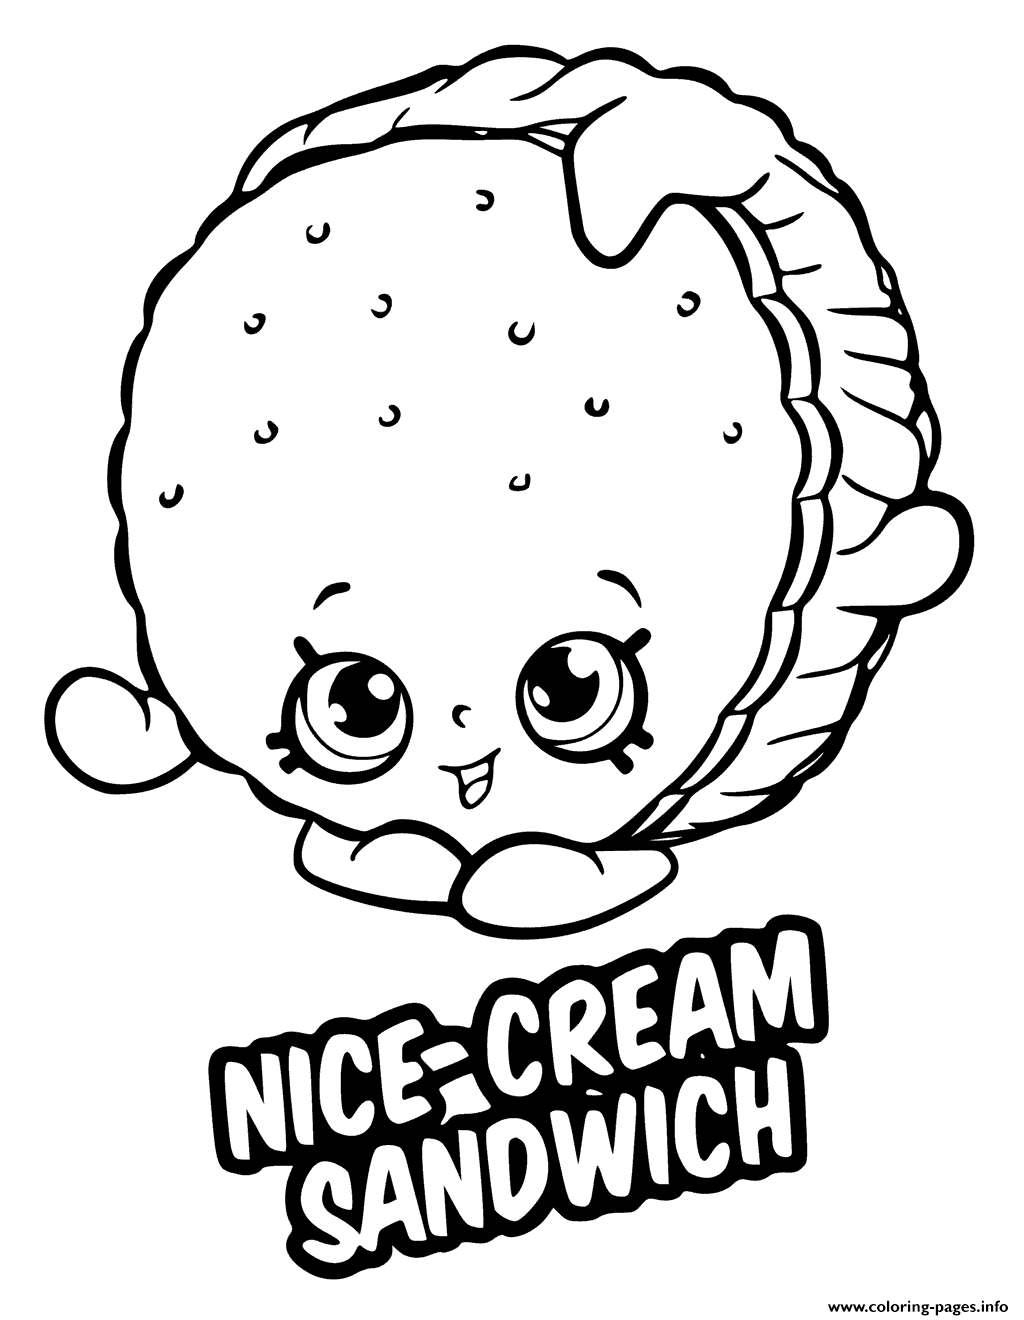 nice cream sandwich coloring pages - Coloring Pages Info